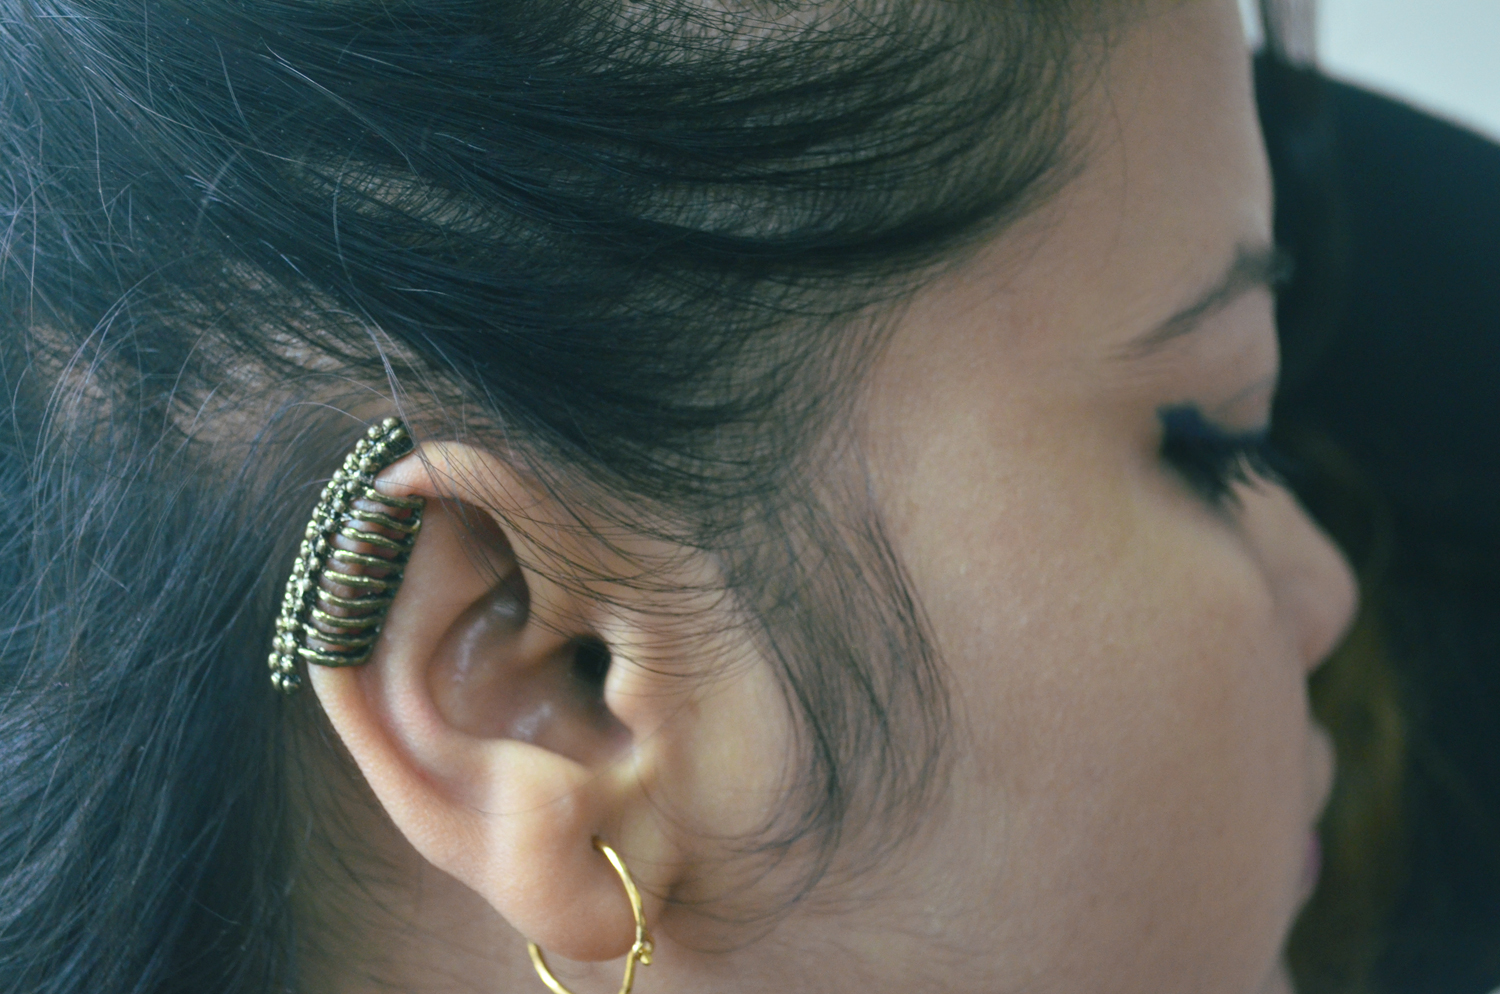 Born Pretty vertebrae ear cuff